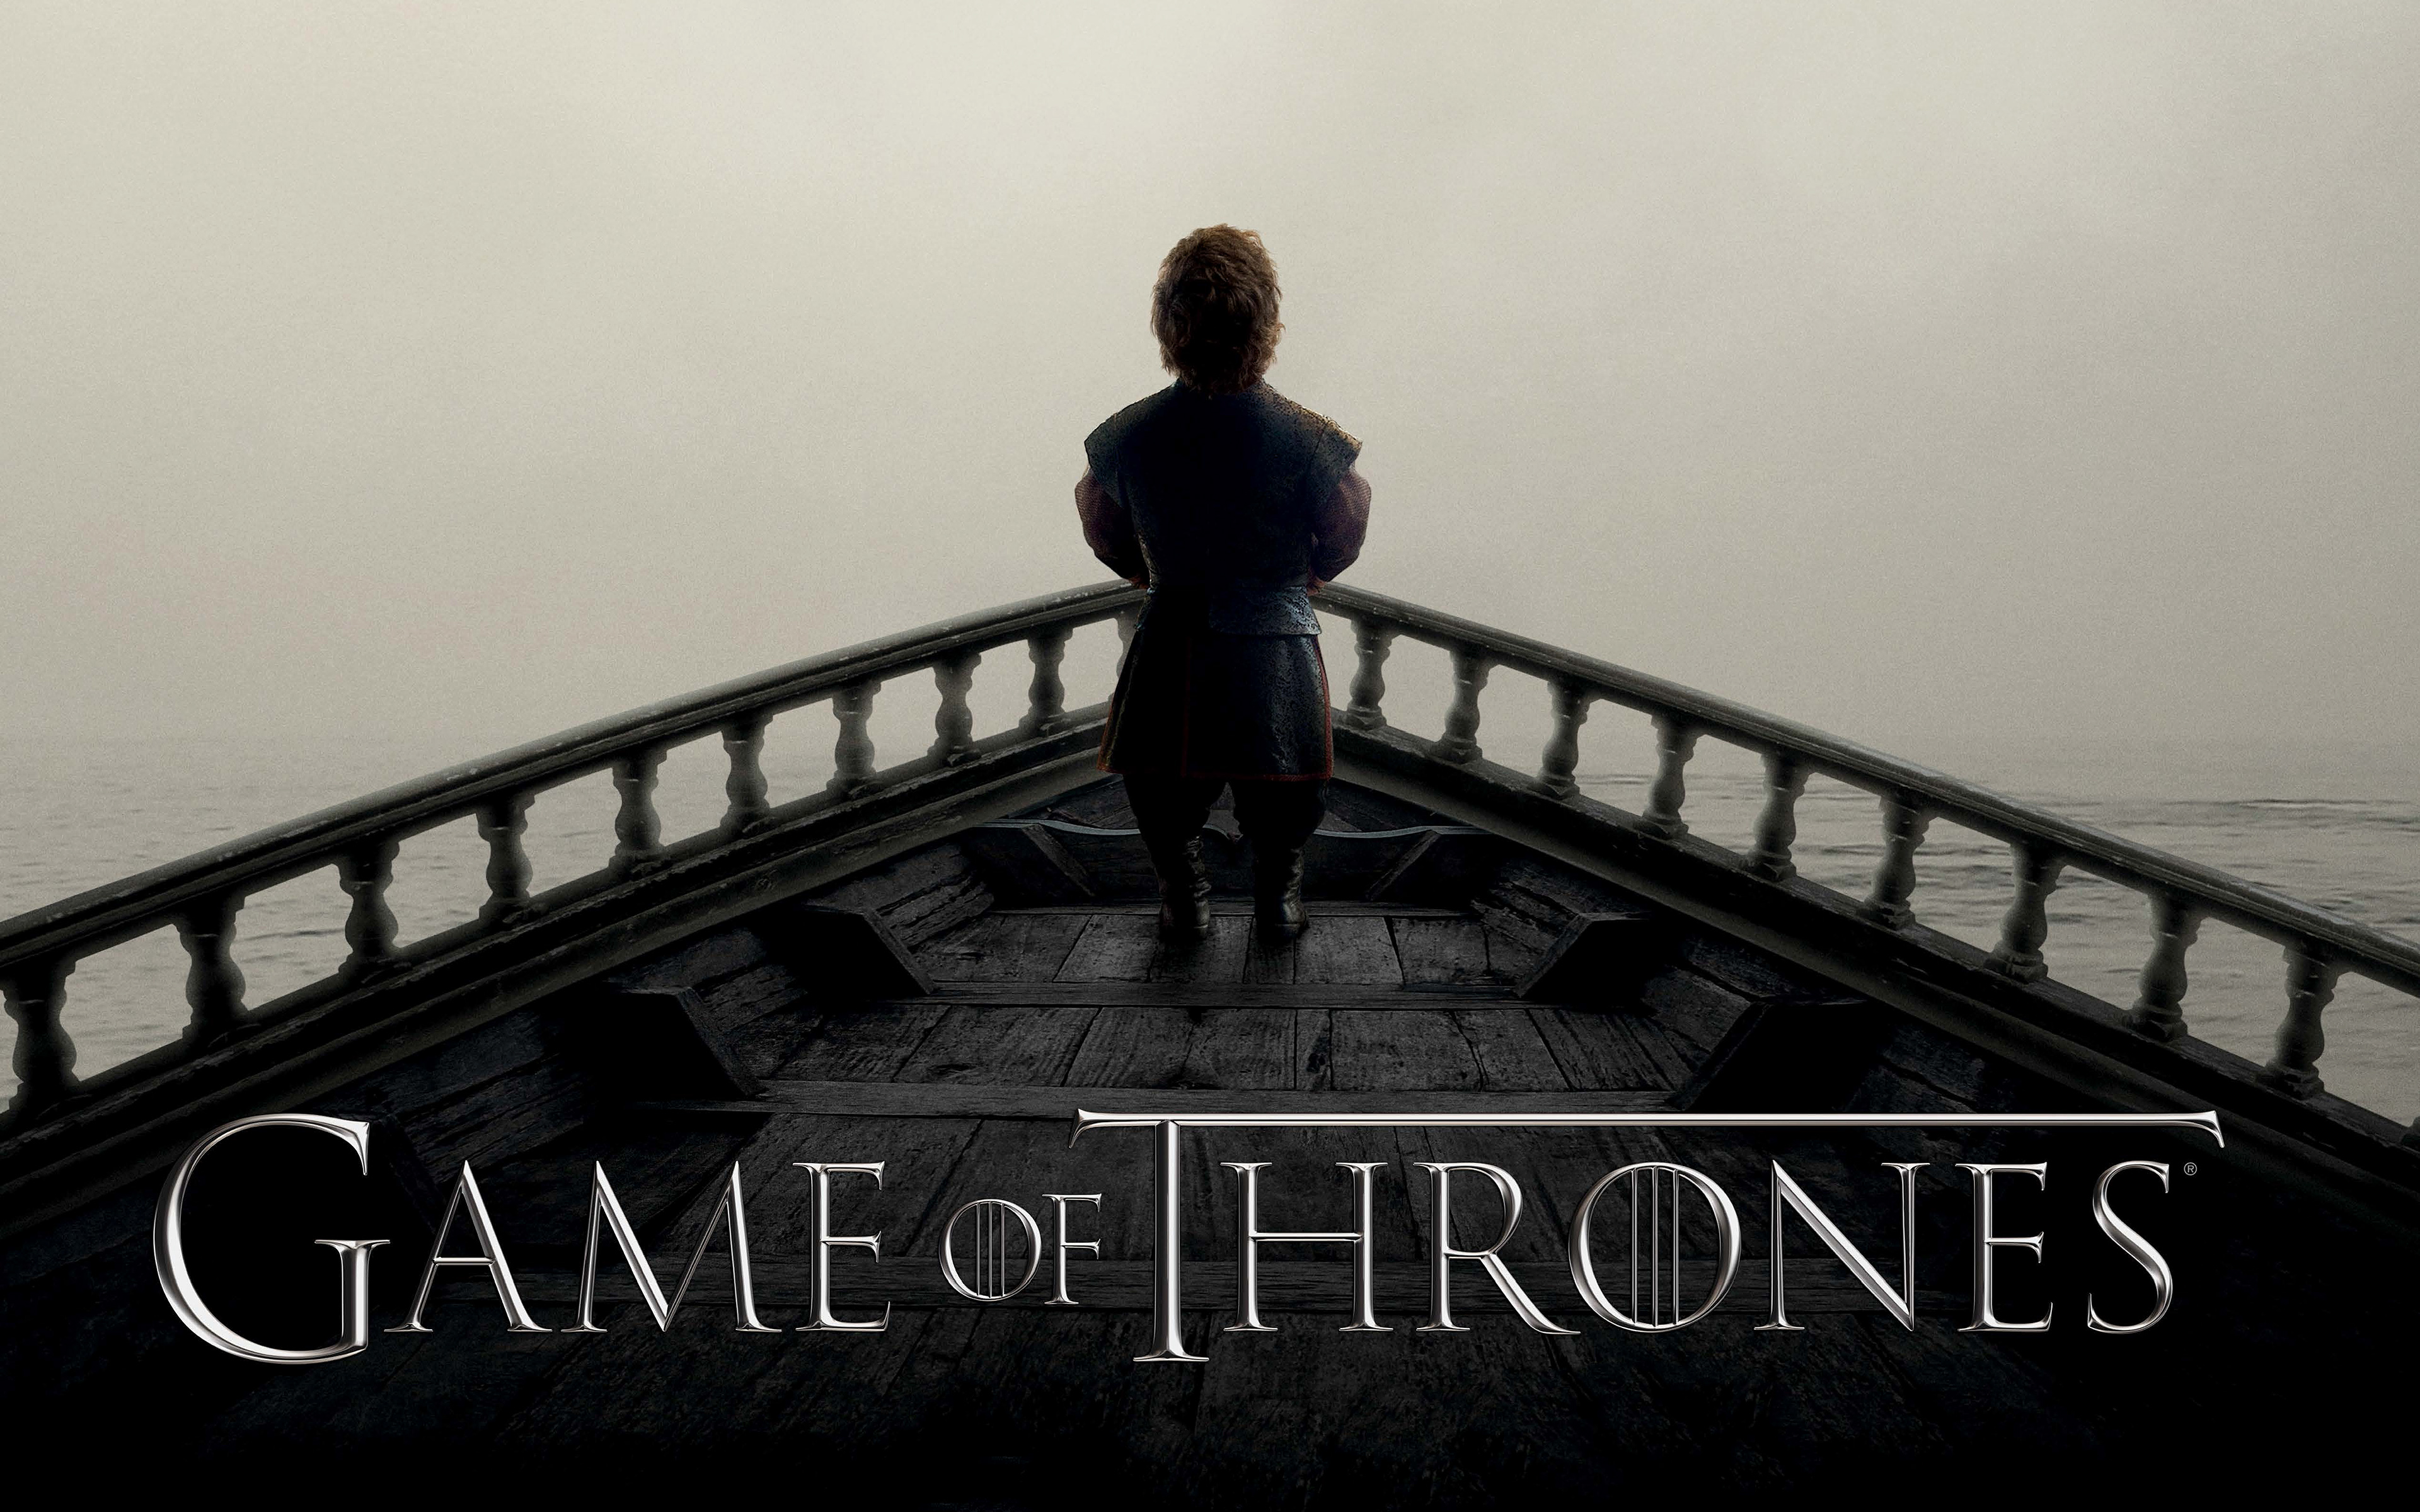 Game Of Thrones Wallpaper - Game Of Thrones 5 Poster - HD Wallpaper